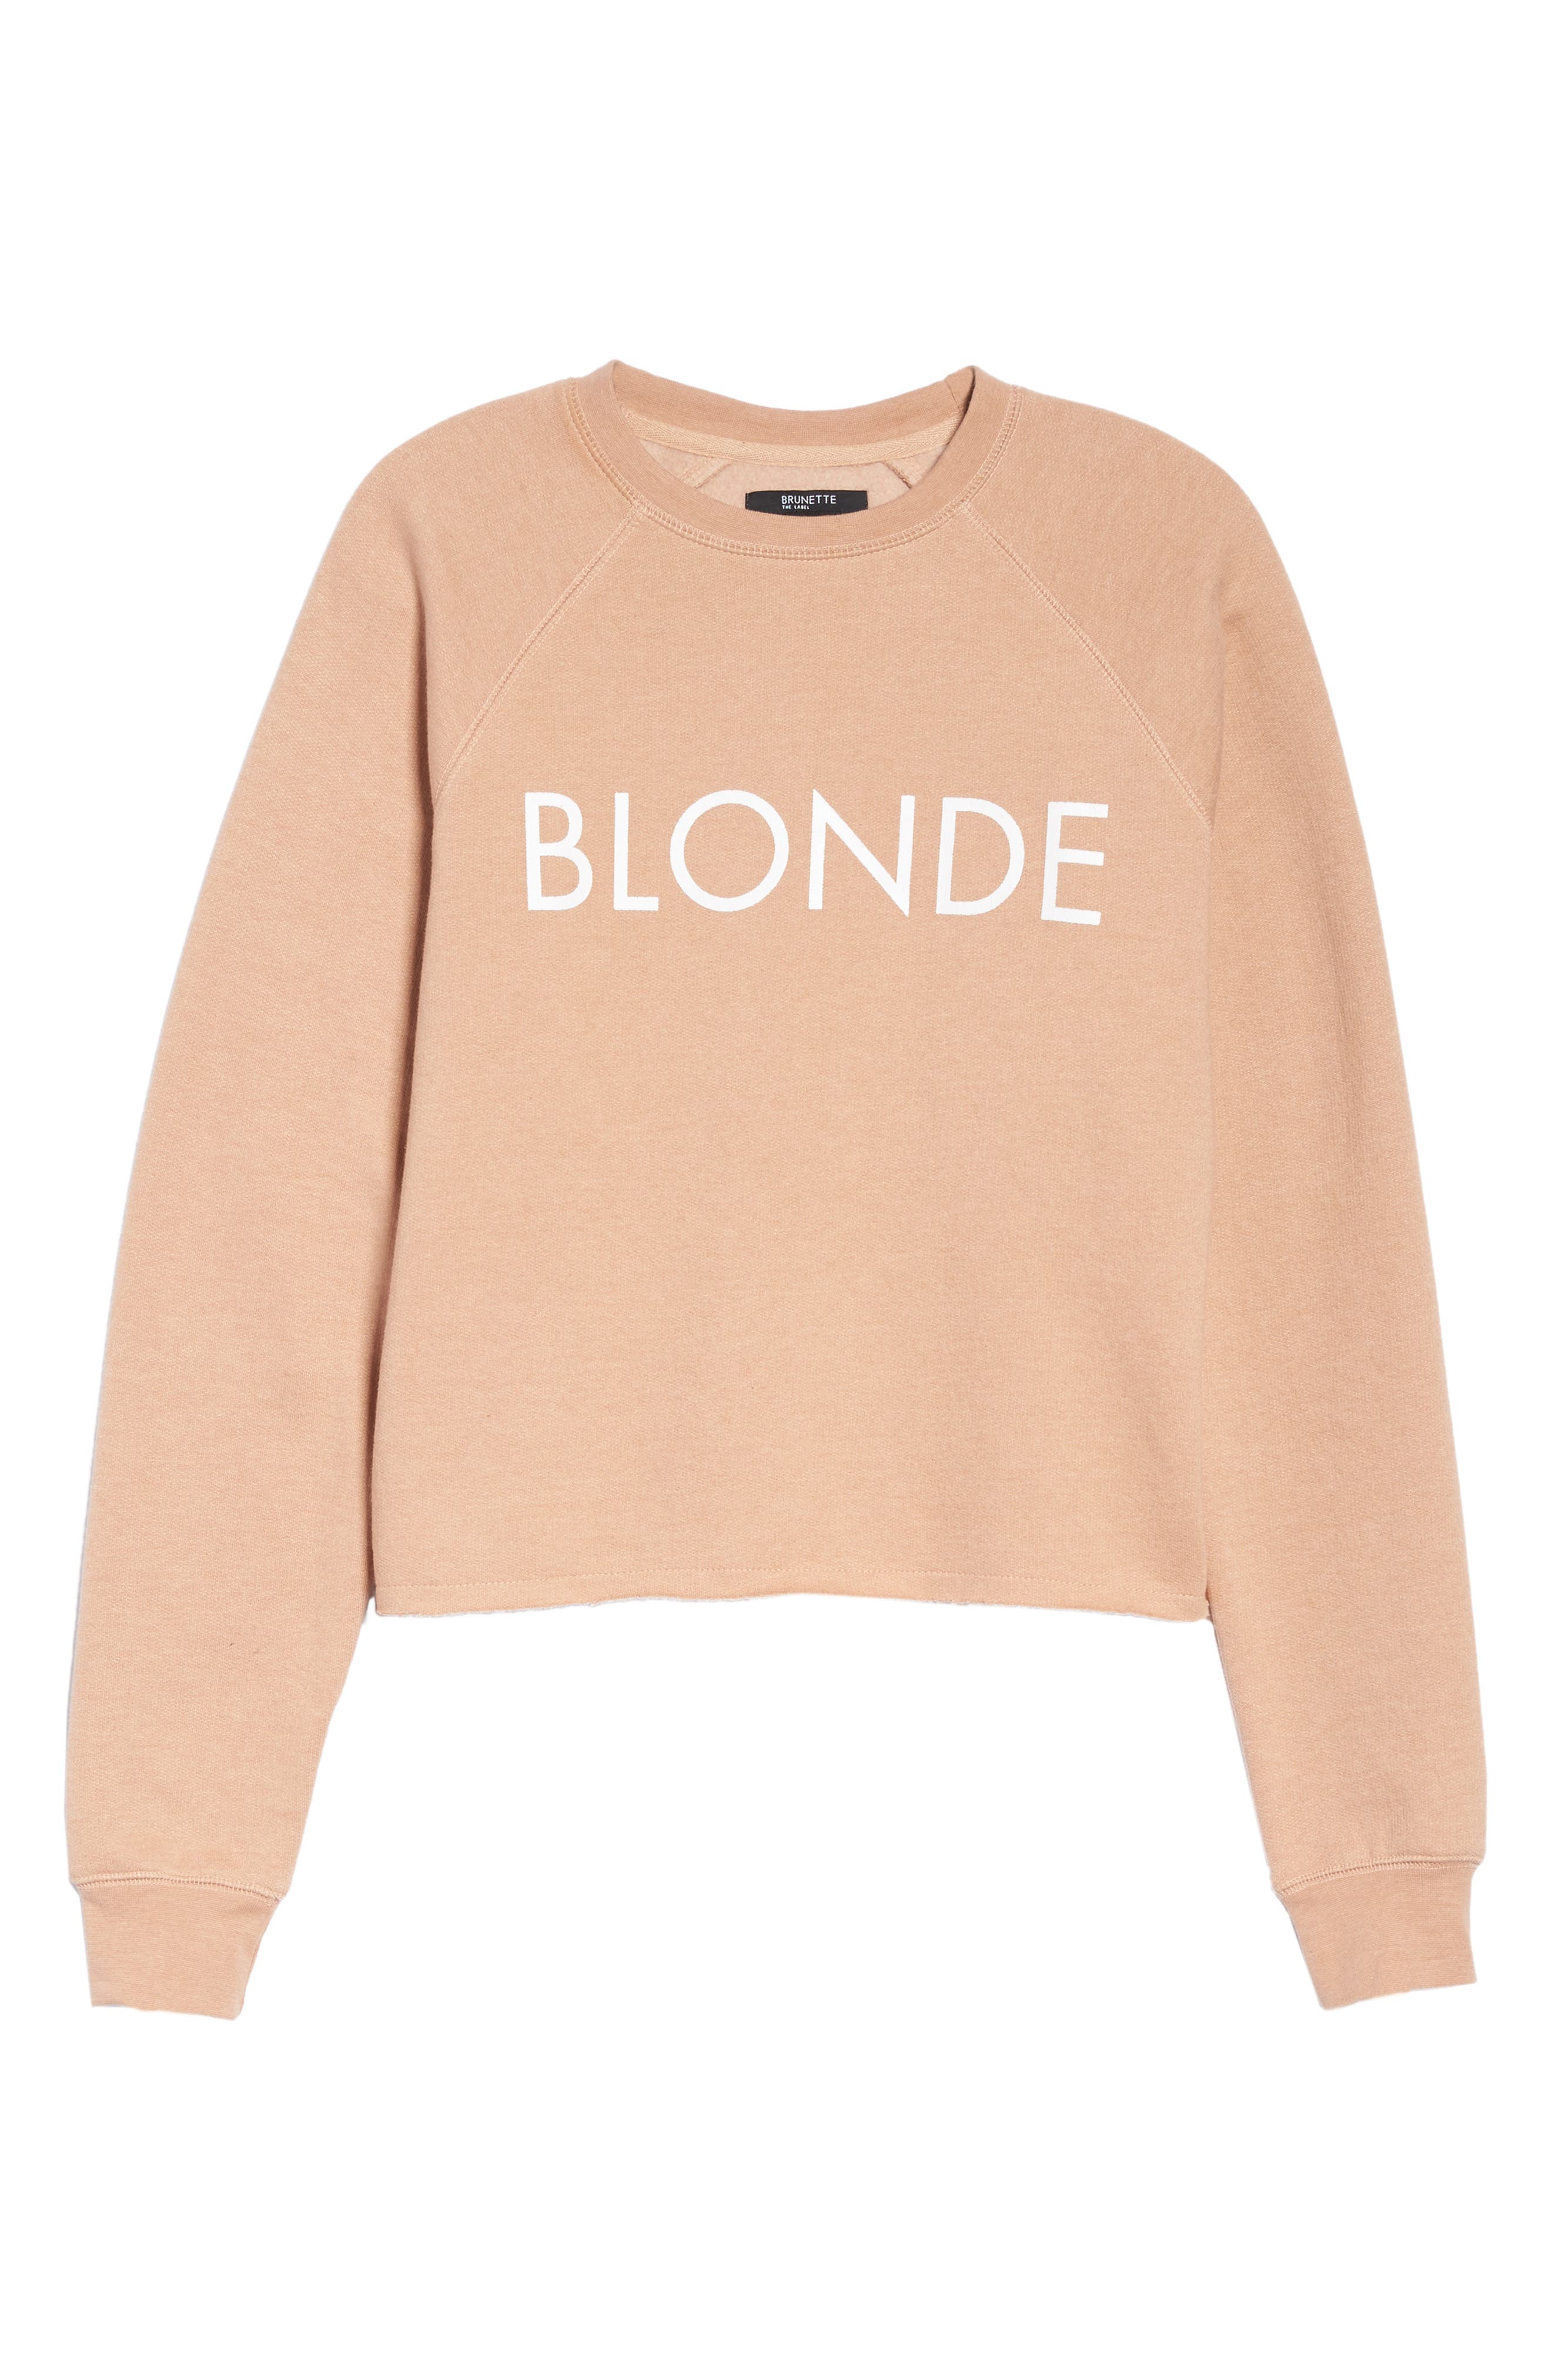 Middle Sister Blonde Sweatshirt,                             Alternate thumbnail 6, color,                             250